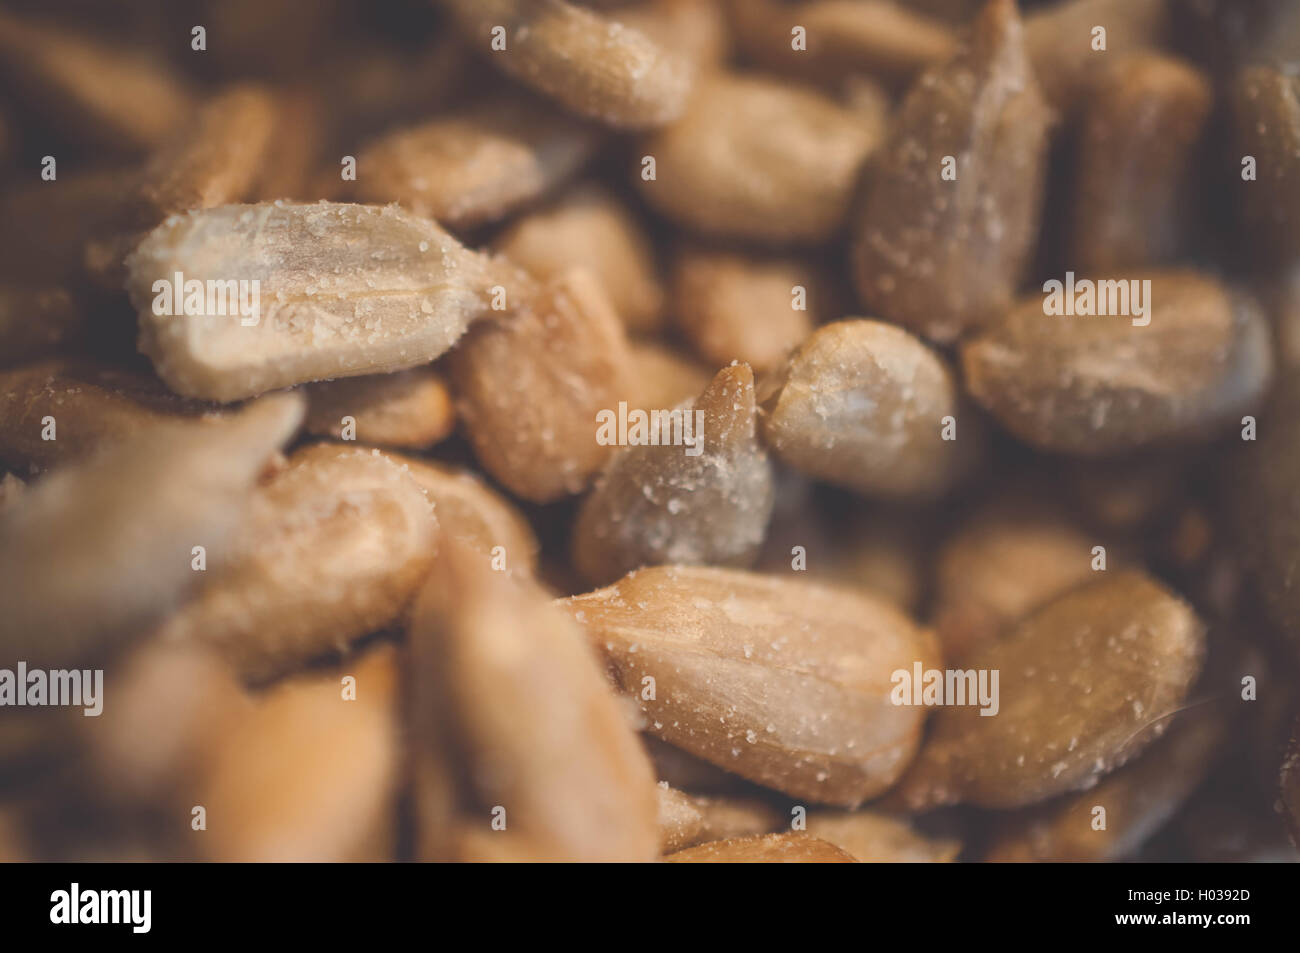 Close up macro image of dehulled kernels from sunflower seeds. - Stock Image